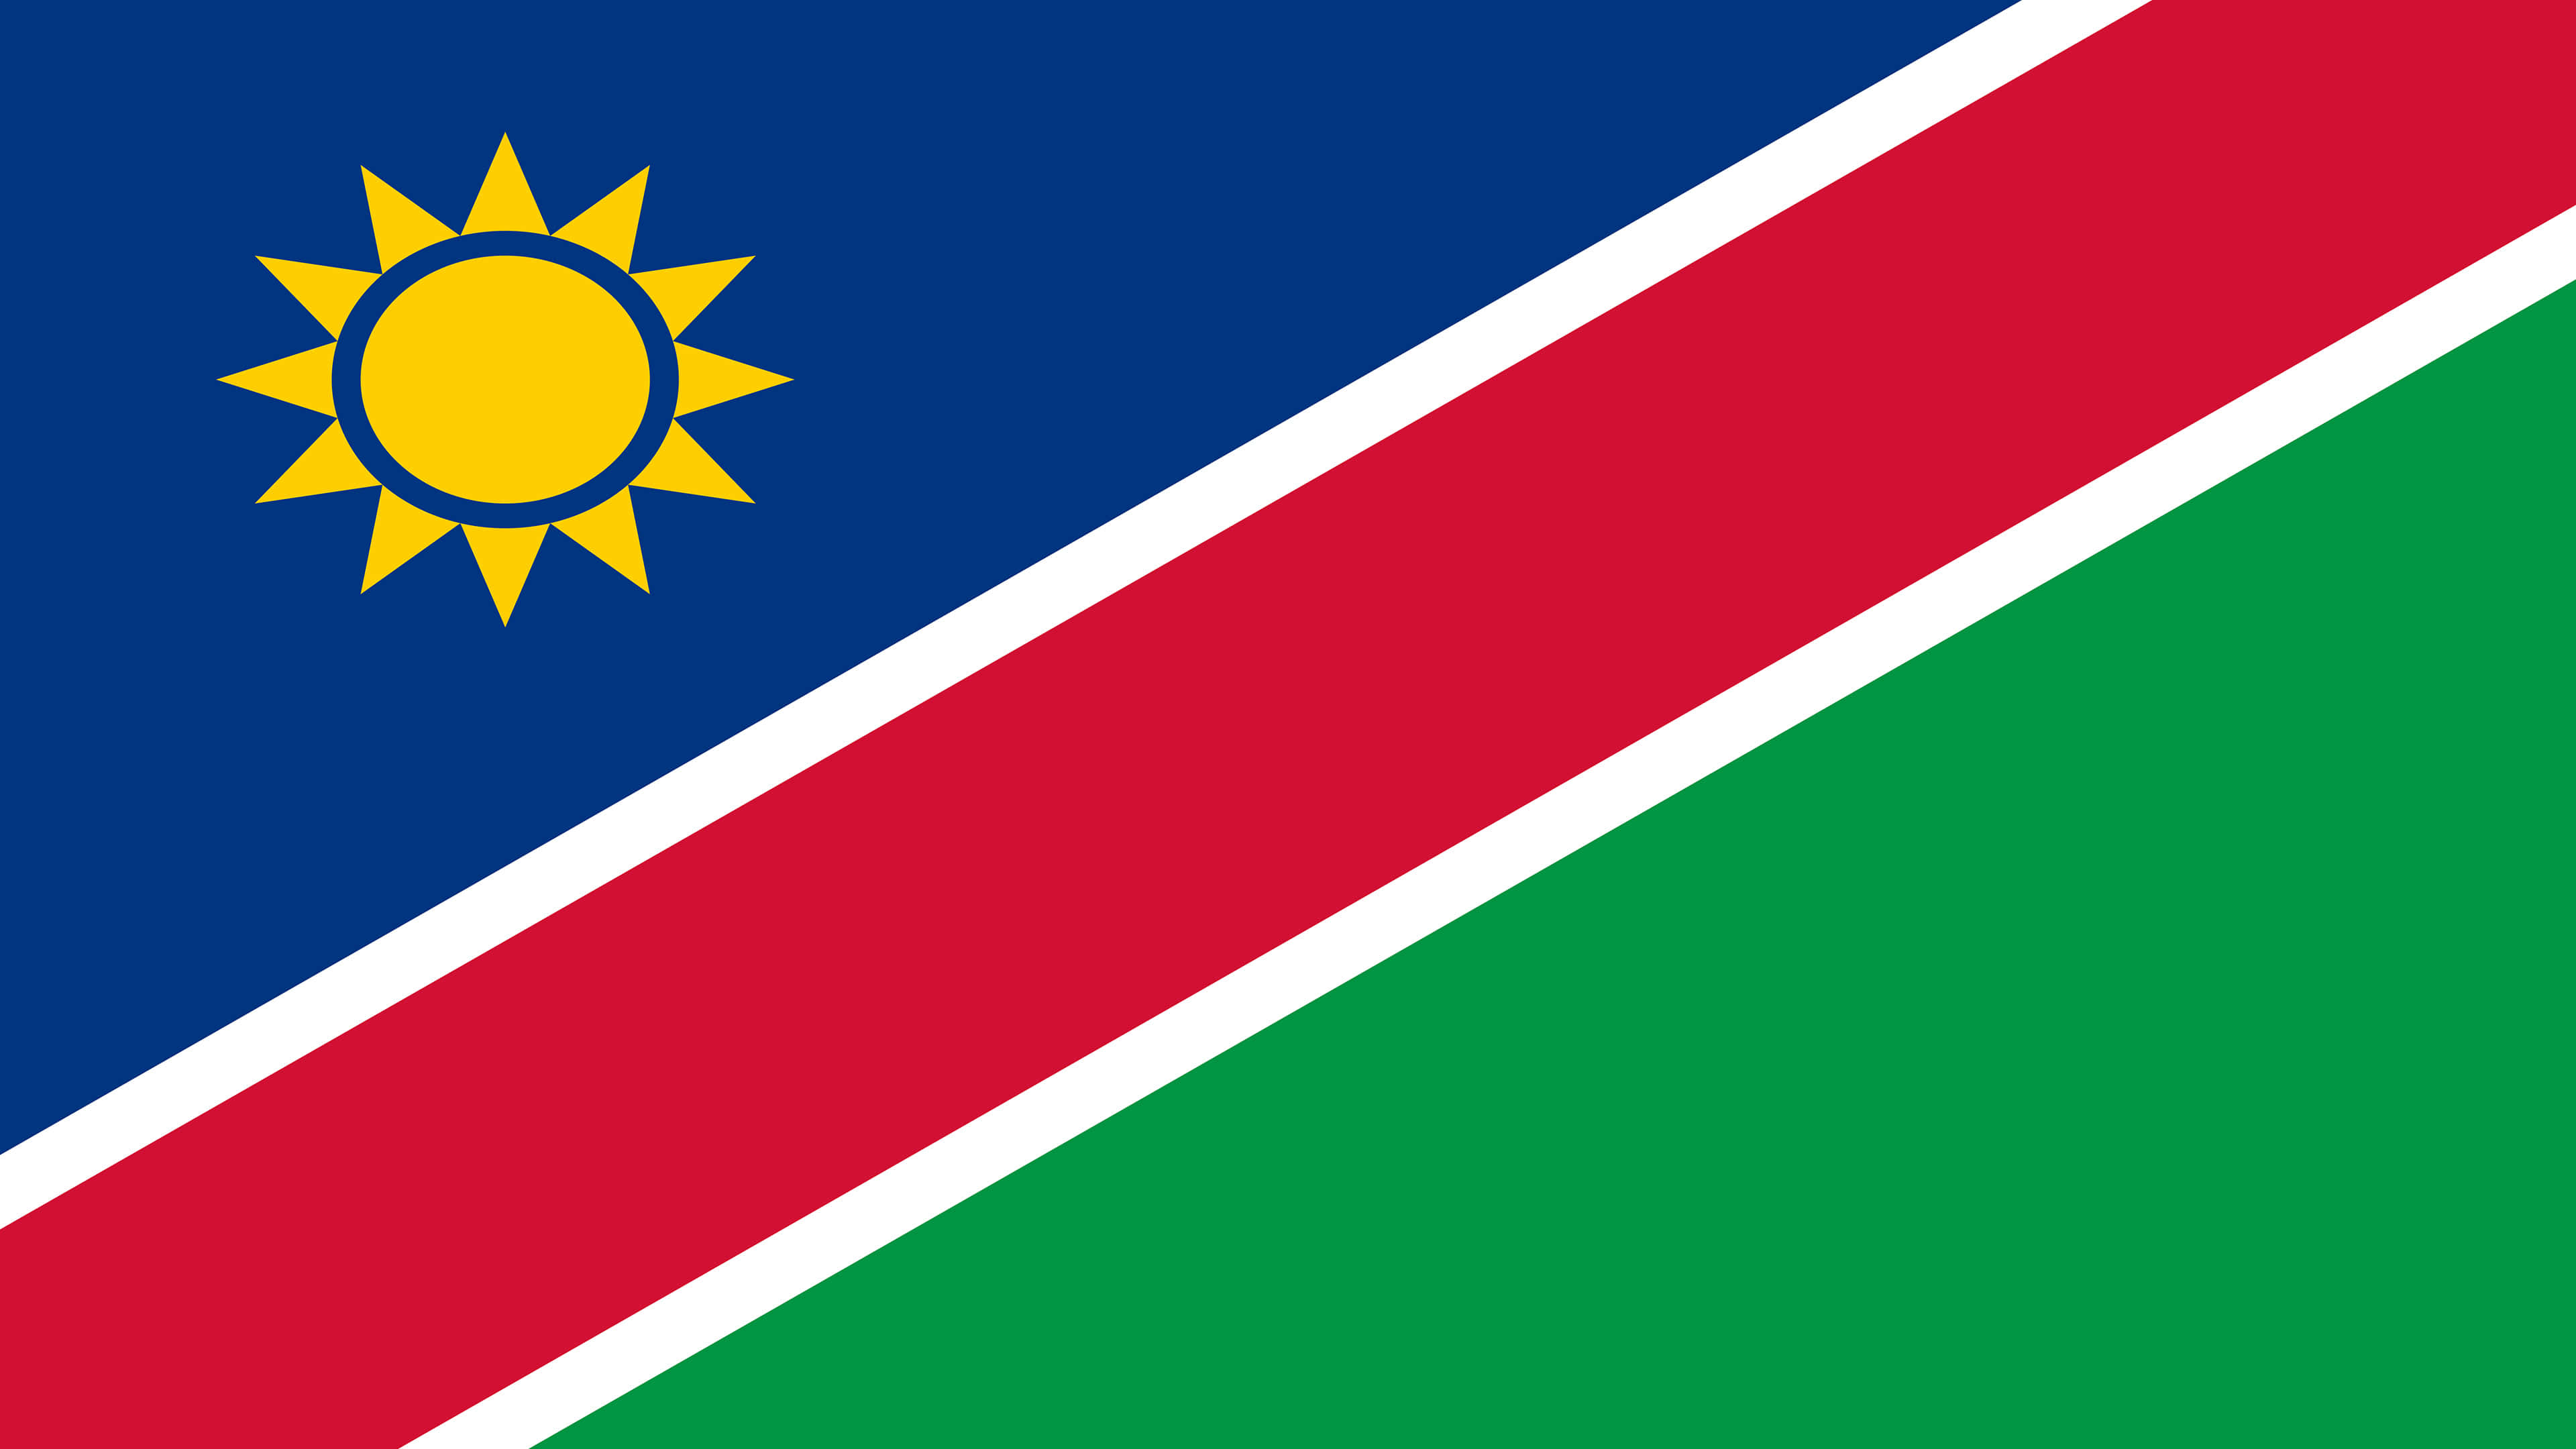 namibia flag uhd 4k wallpaper